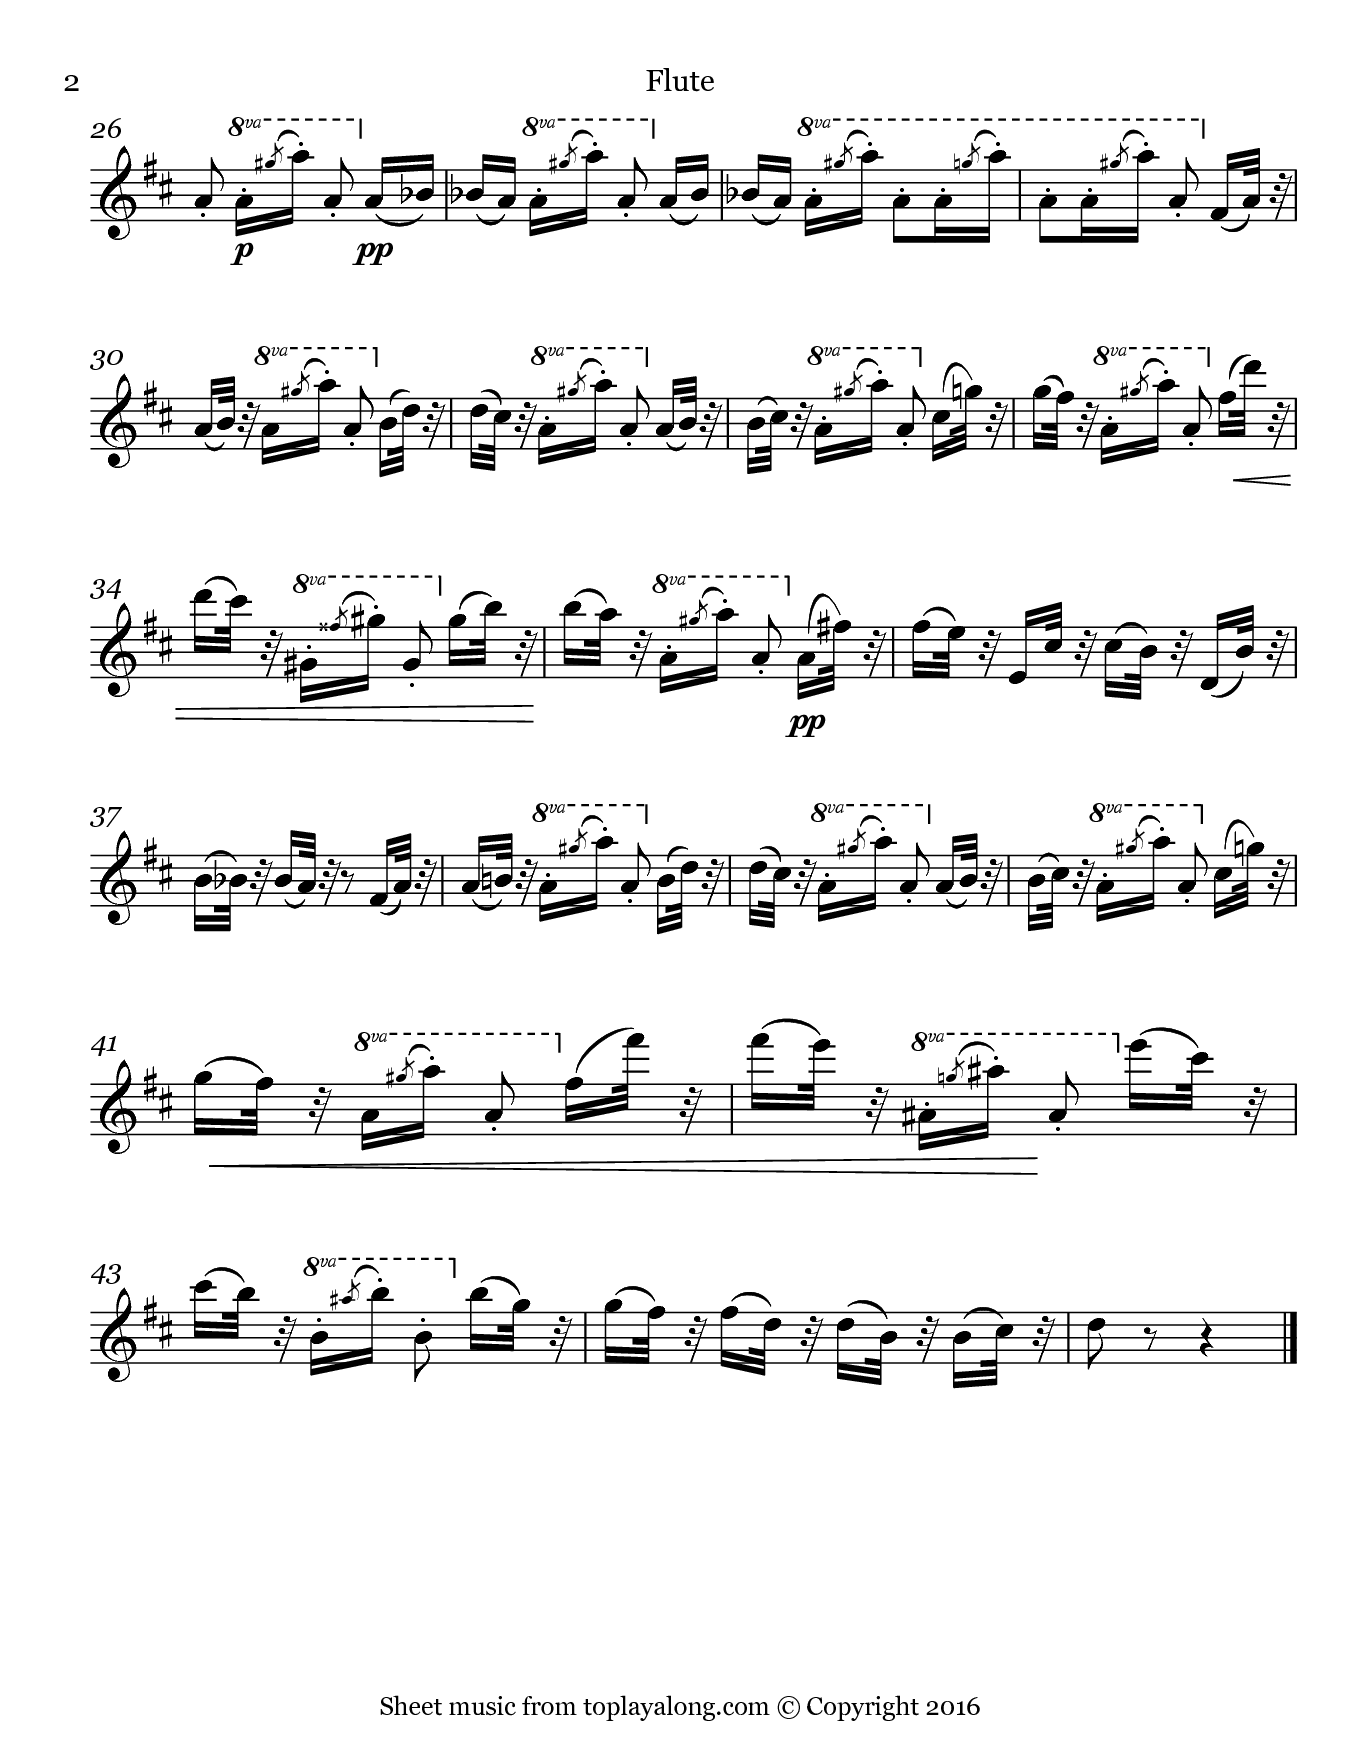 Dance of the Hours from La Gioconda by Ponchielli. Sheet music for Flute, page 2.